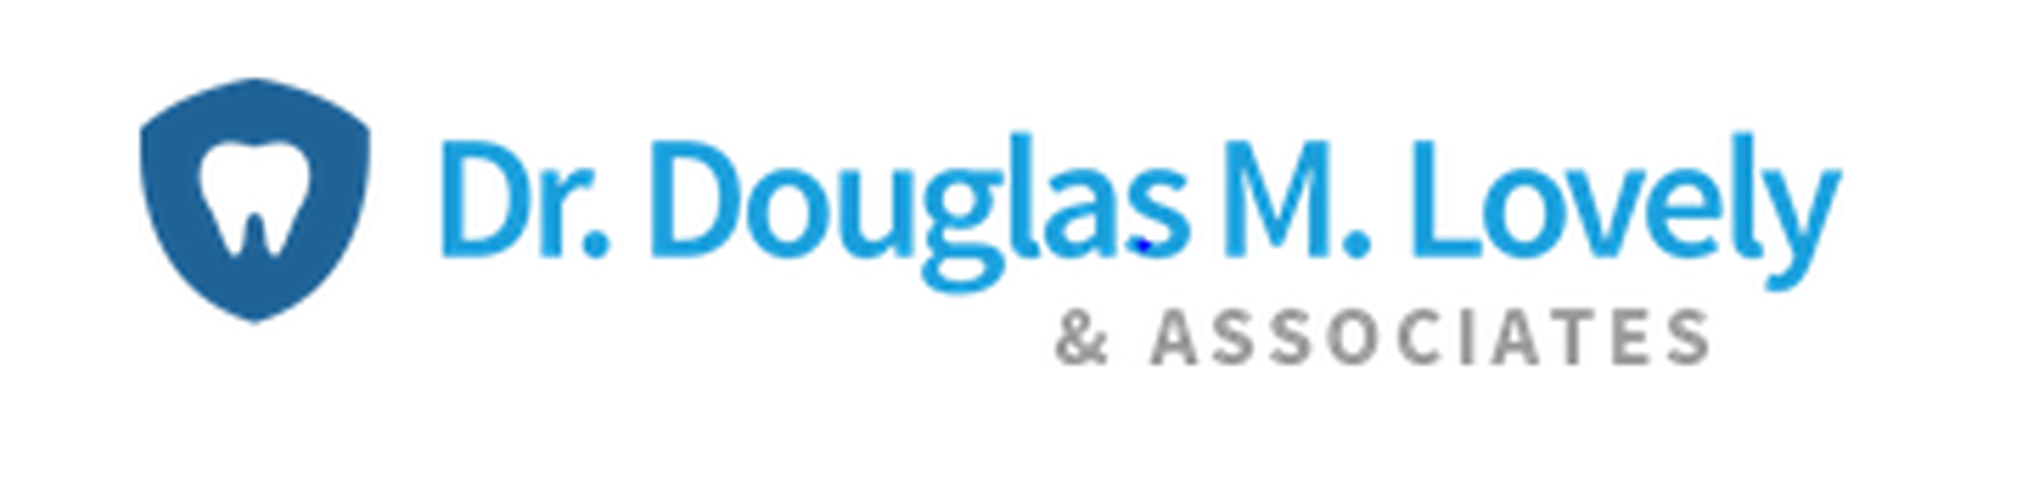 Dr Douglas Lovely & Associates - Dentistes - 604-524-4981